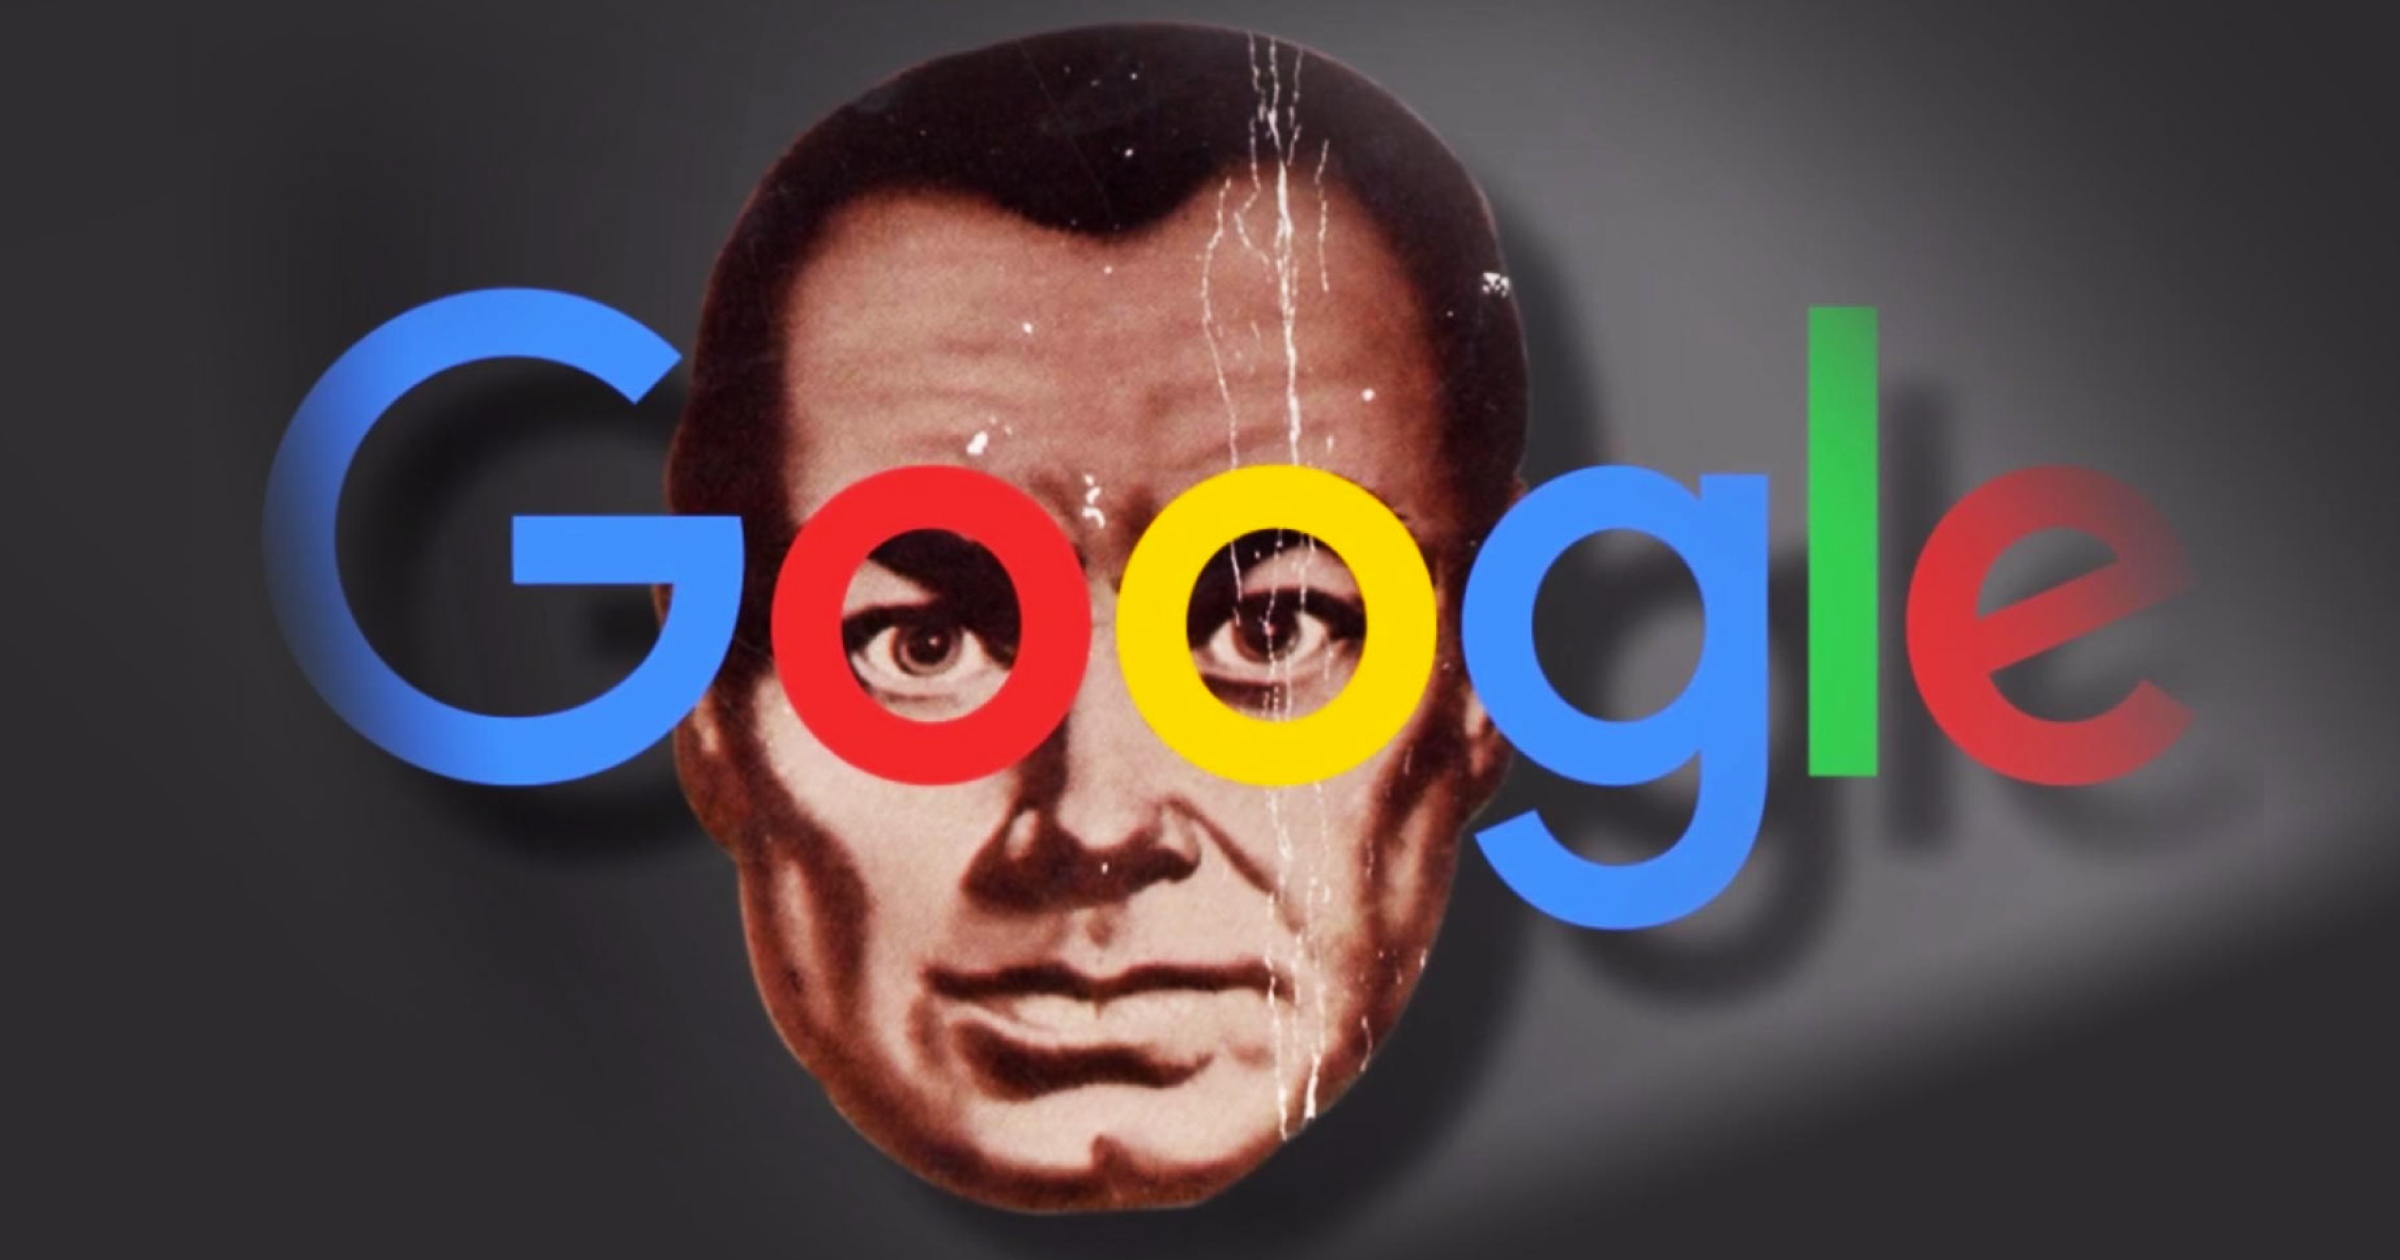 Google - Ministry of Truth and an instrument of Big Brother dictate